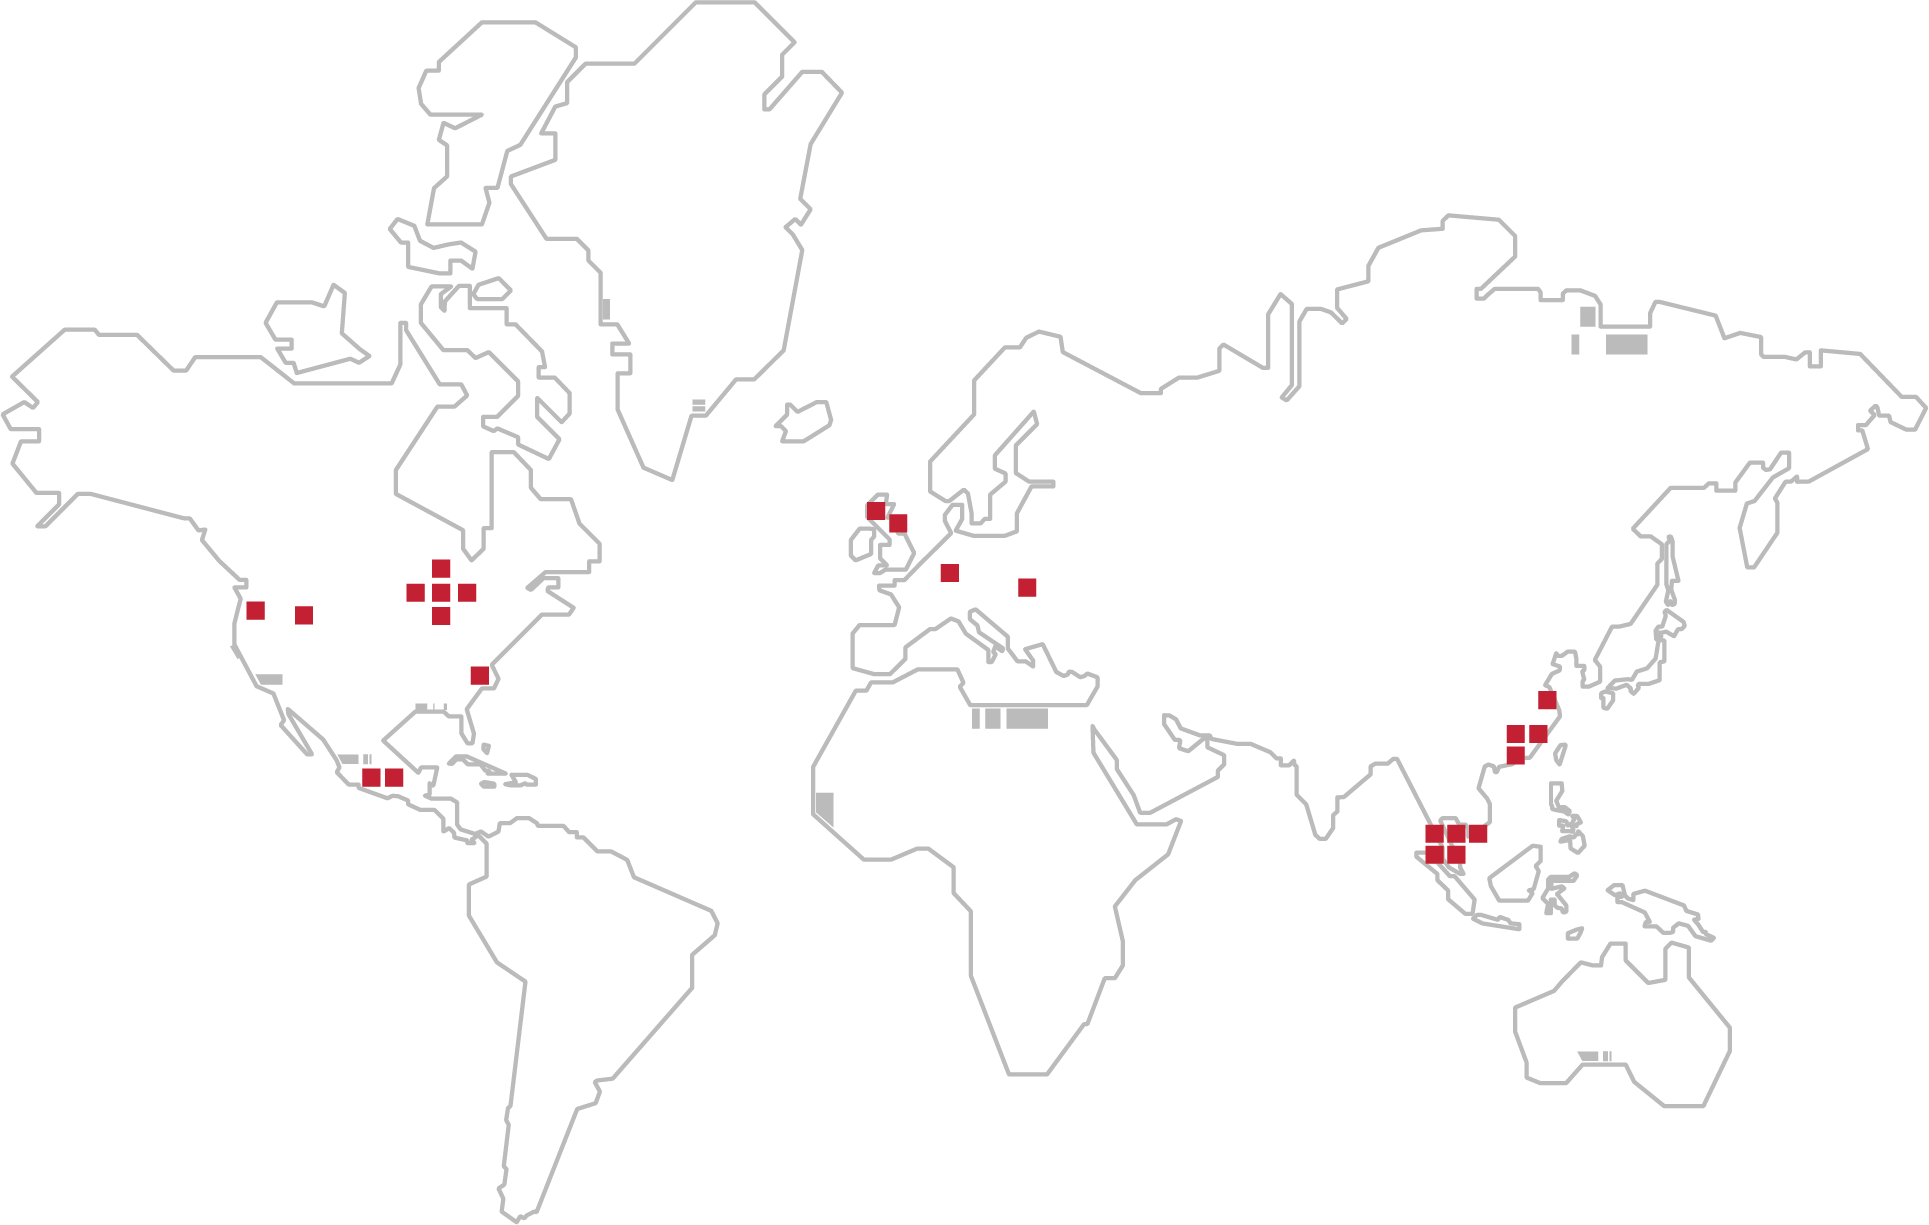 Global-Locations-Web_12JUN2019.png